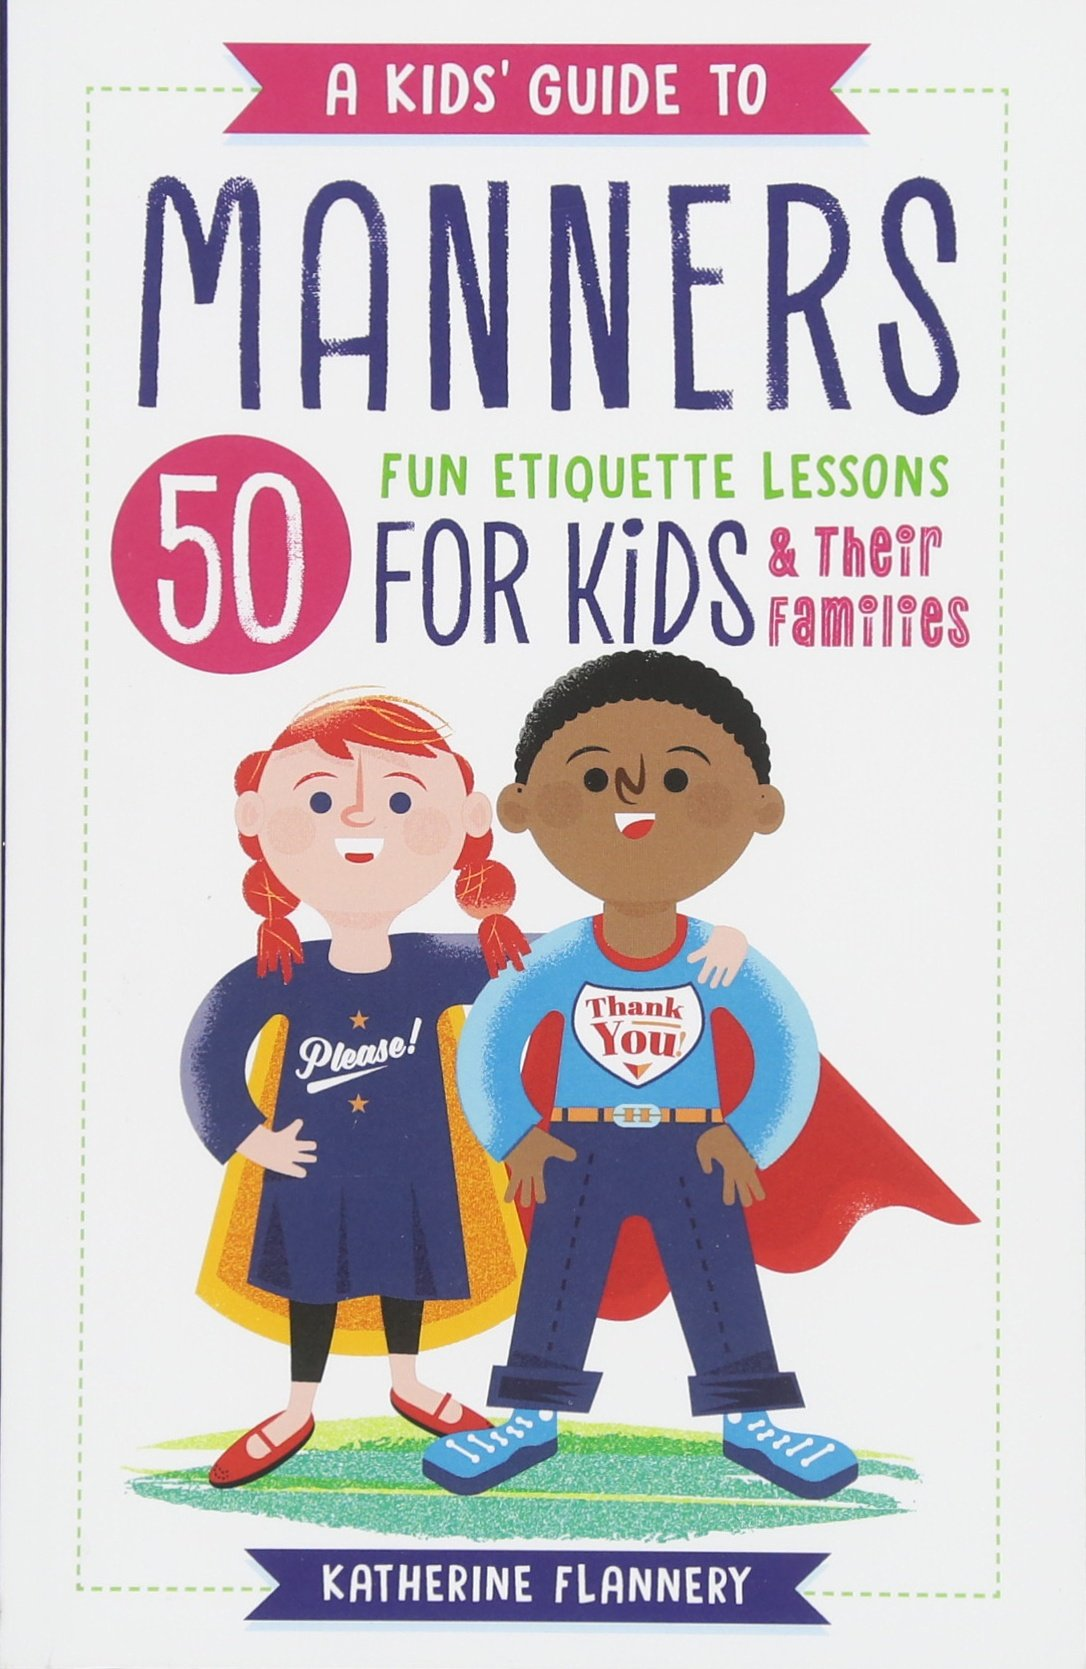 Kids' Guide to Manners: 50 Fun Etiquette Lessons for Kids (and Their Families) by Katherine Flannery